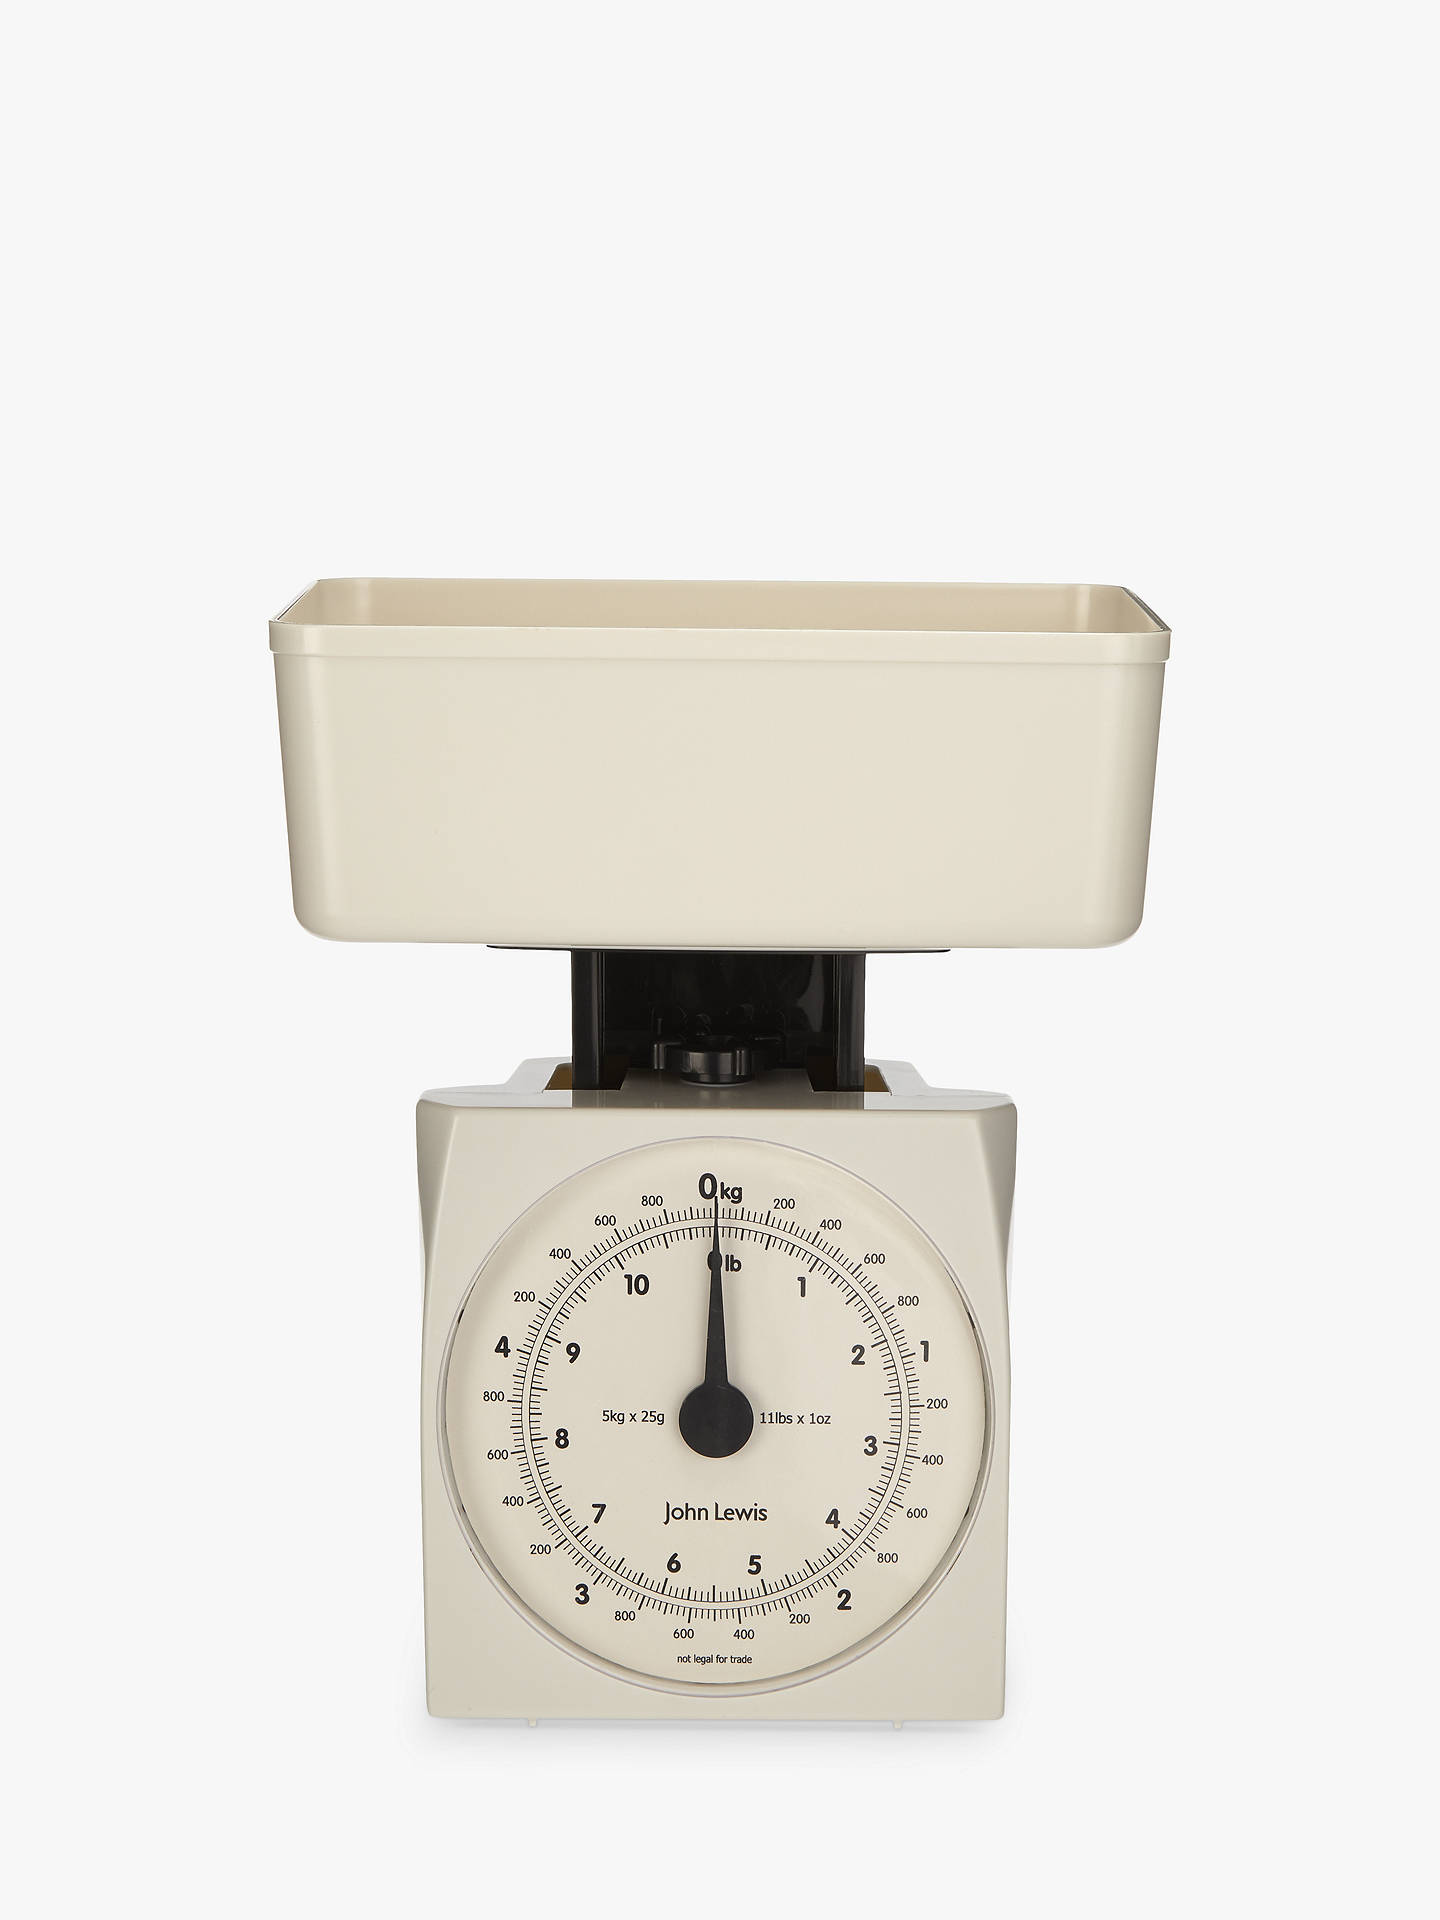 BuyJohn Lewis & Partners The Basics Mechanical Kitchen Scale, White, 5kg Online at johnlewis.com